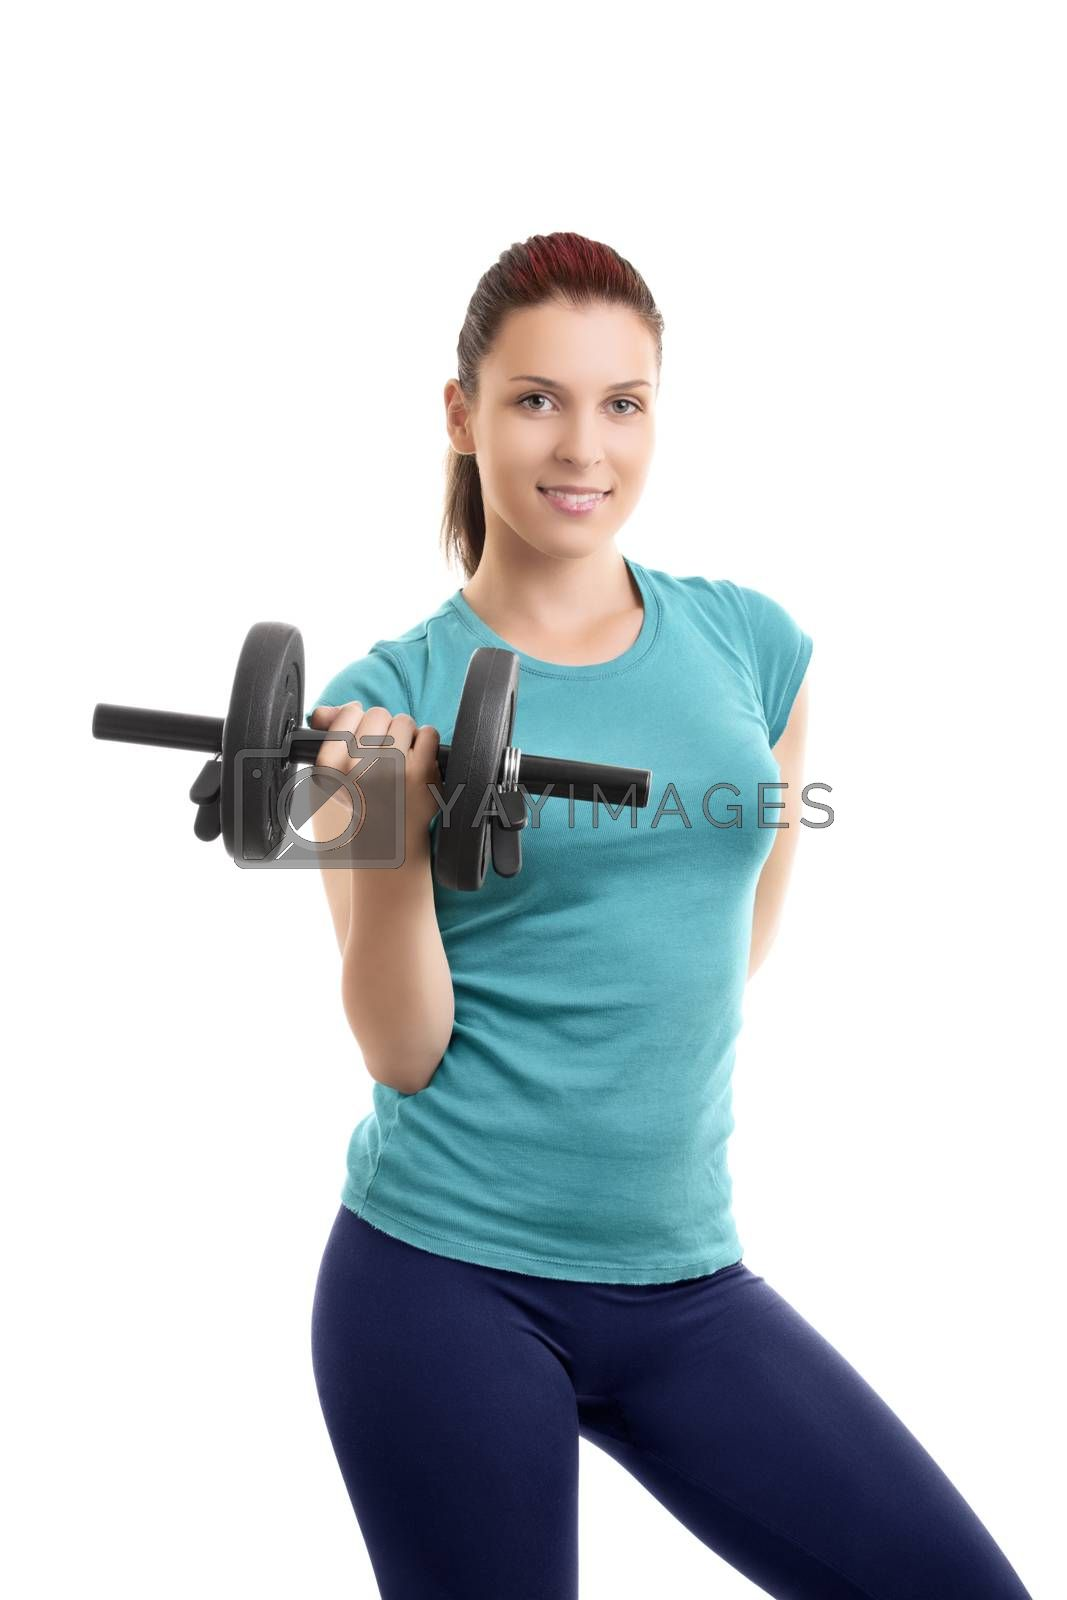 Beautiful fit girl lifting a dumbbell by Mendelex